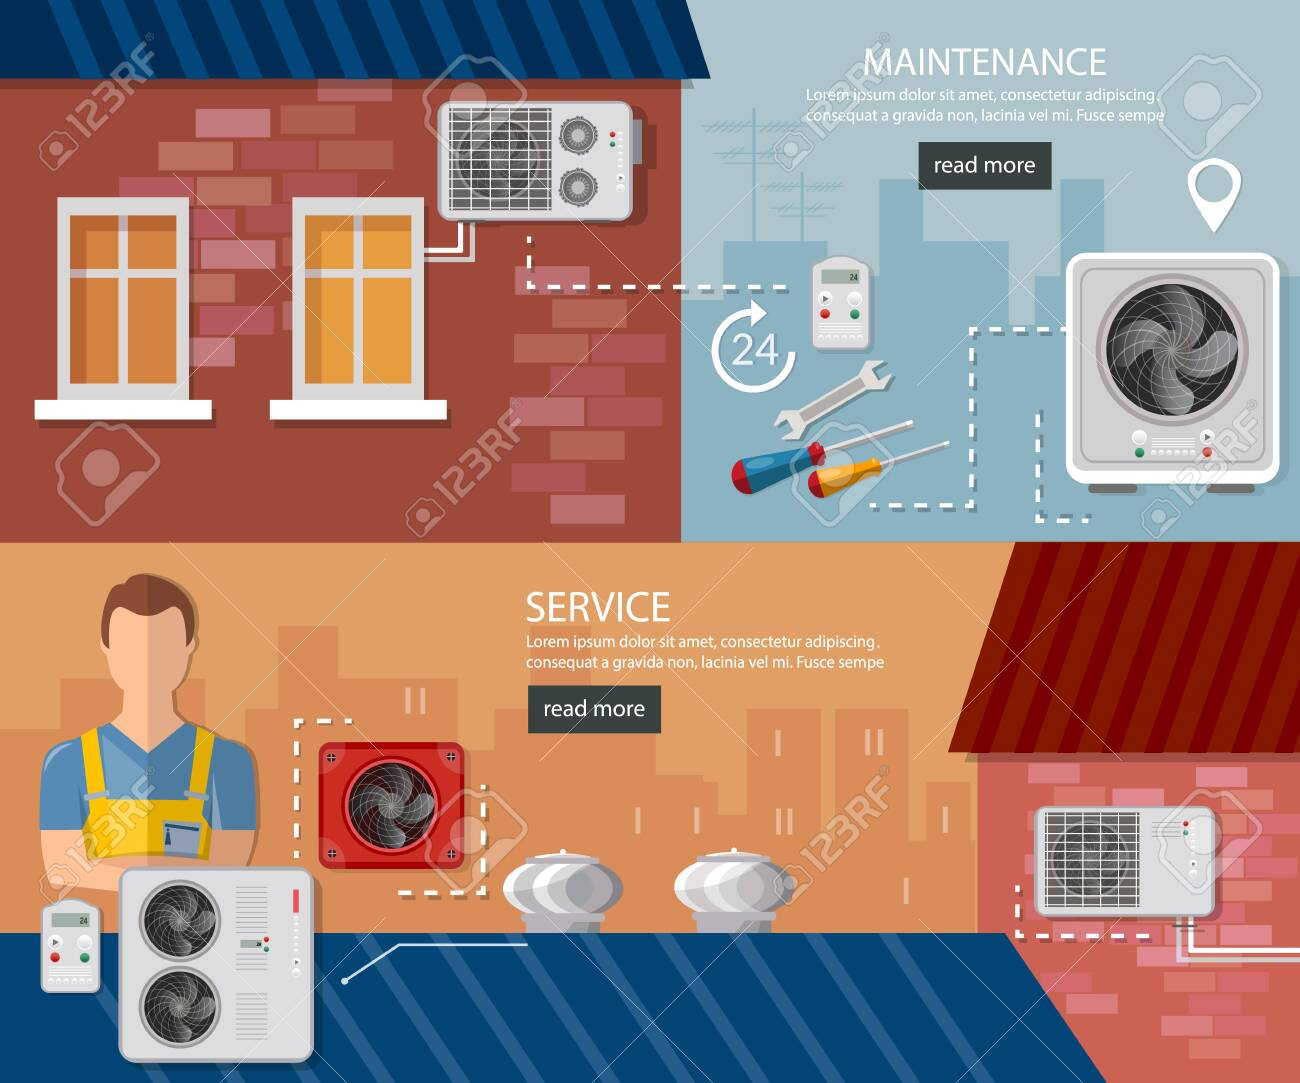 Split System Check Ventilation Systems Installation Of Air Conditioners Royalty Free Cliparts Vectors And Stock Illustration Image 126839744